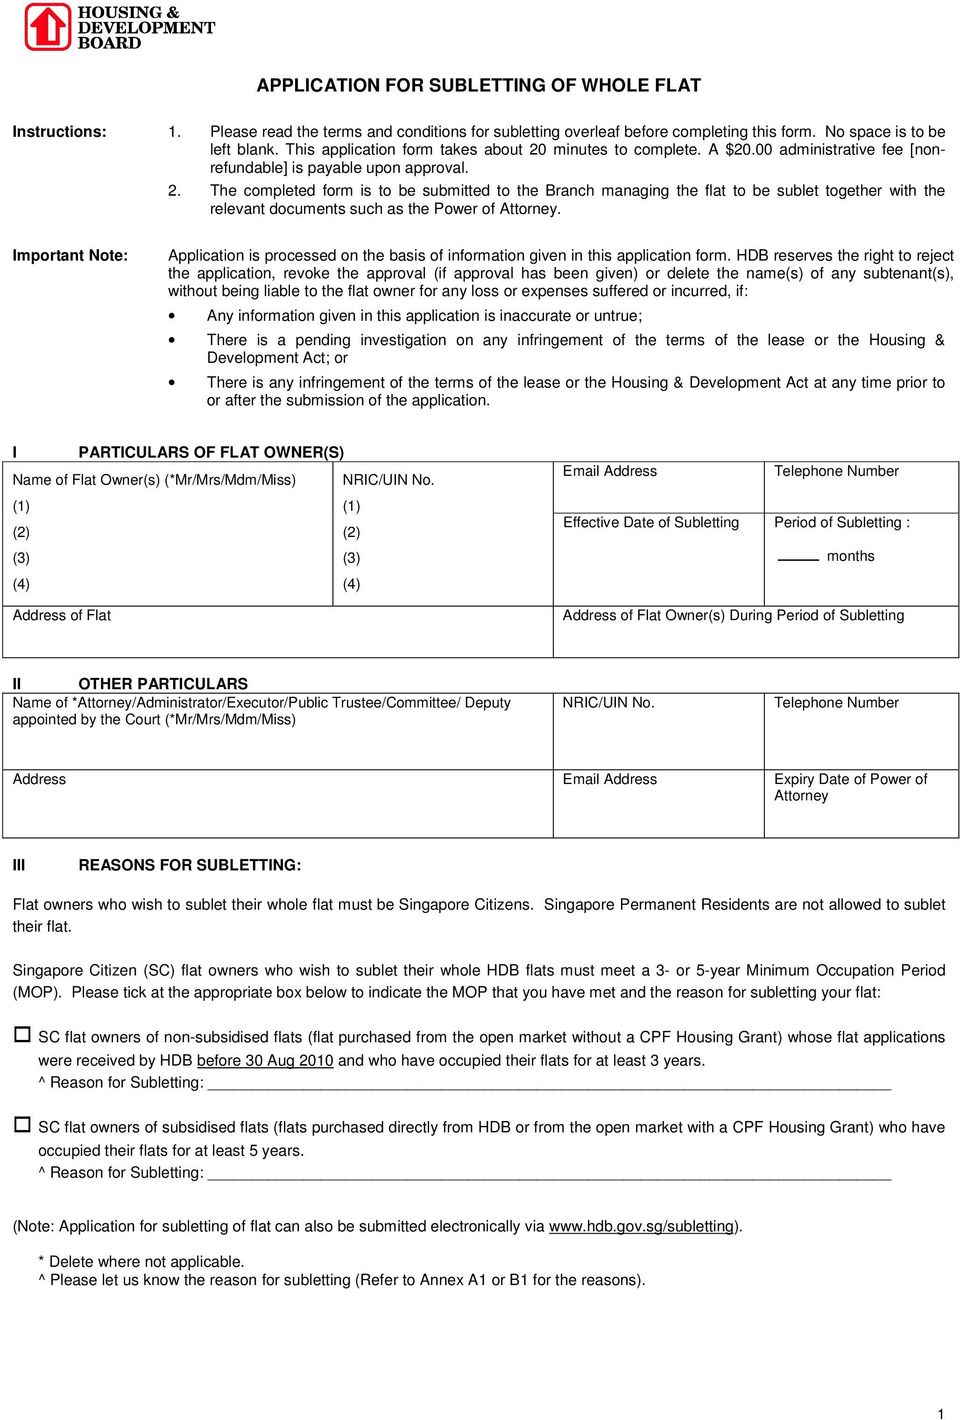 Application For Subletting Of Whole Flat Pdf